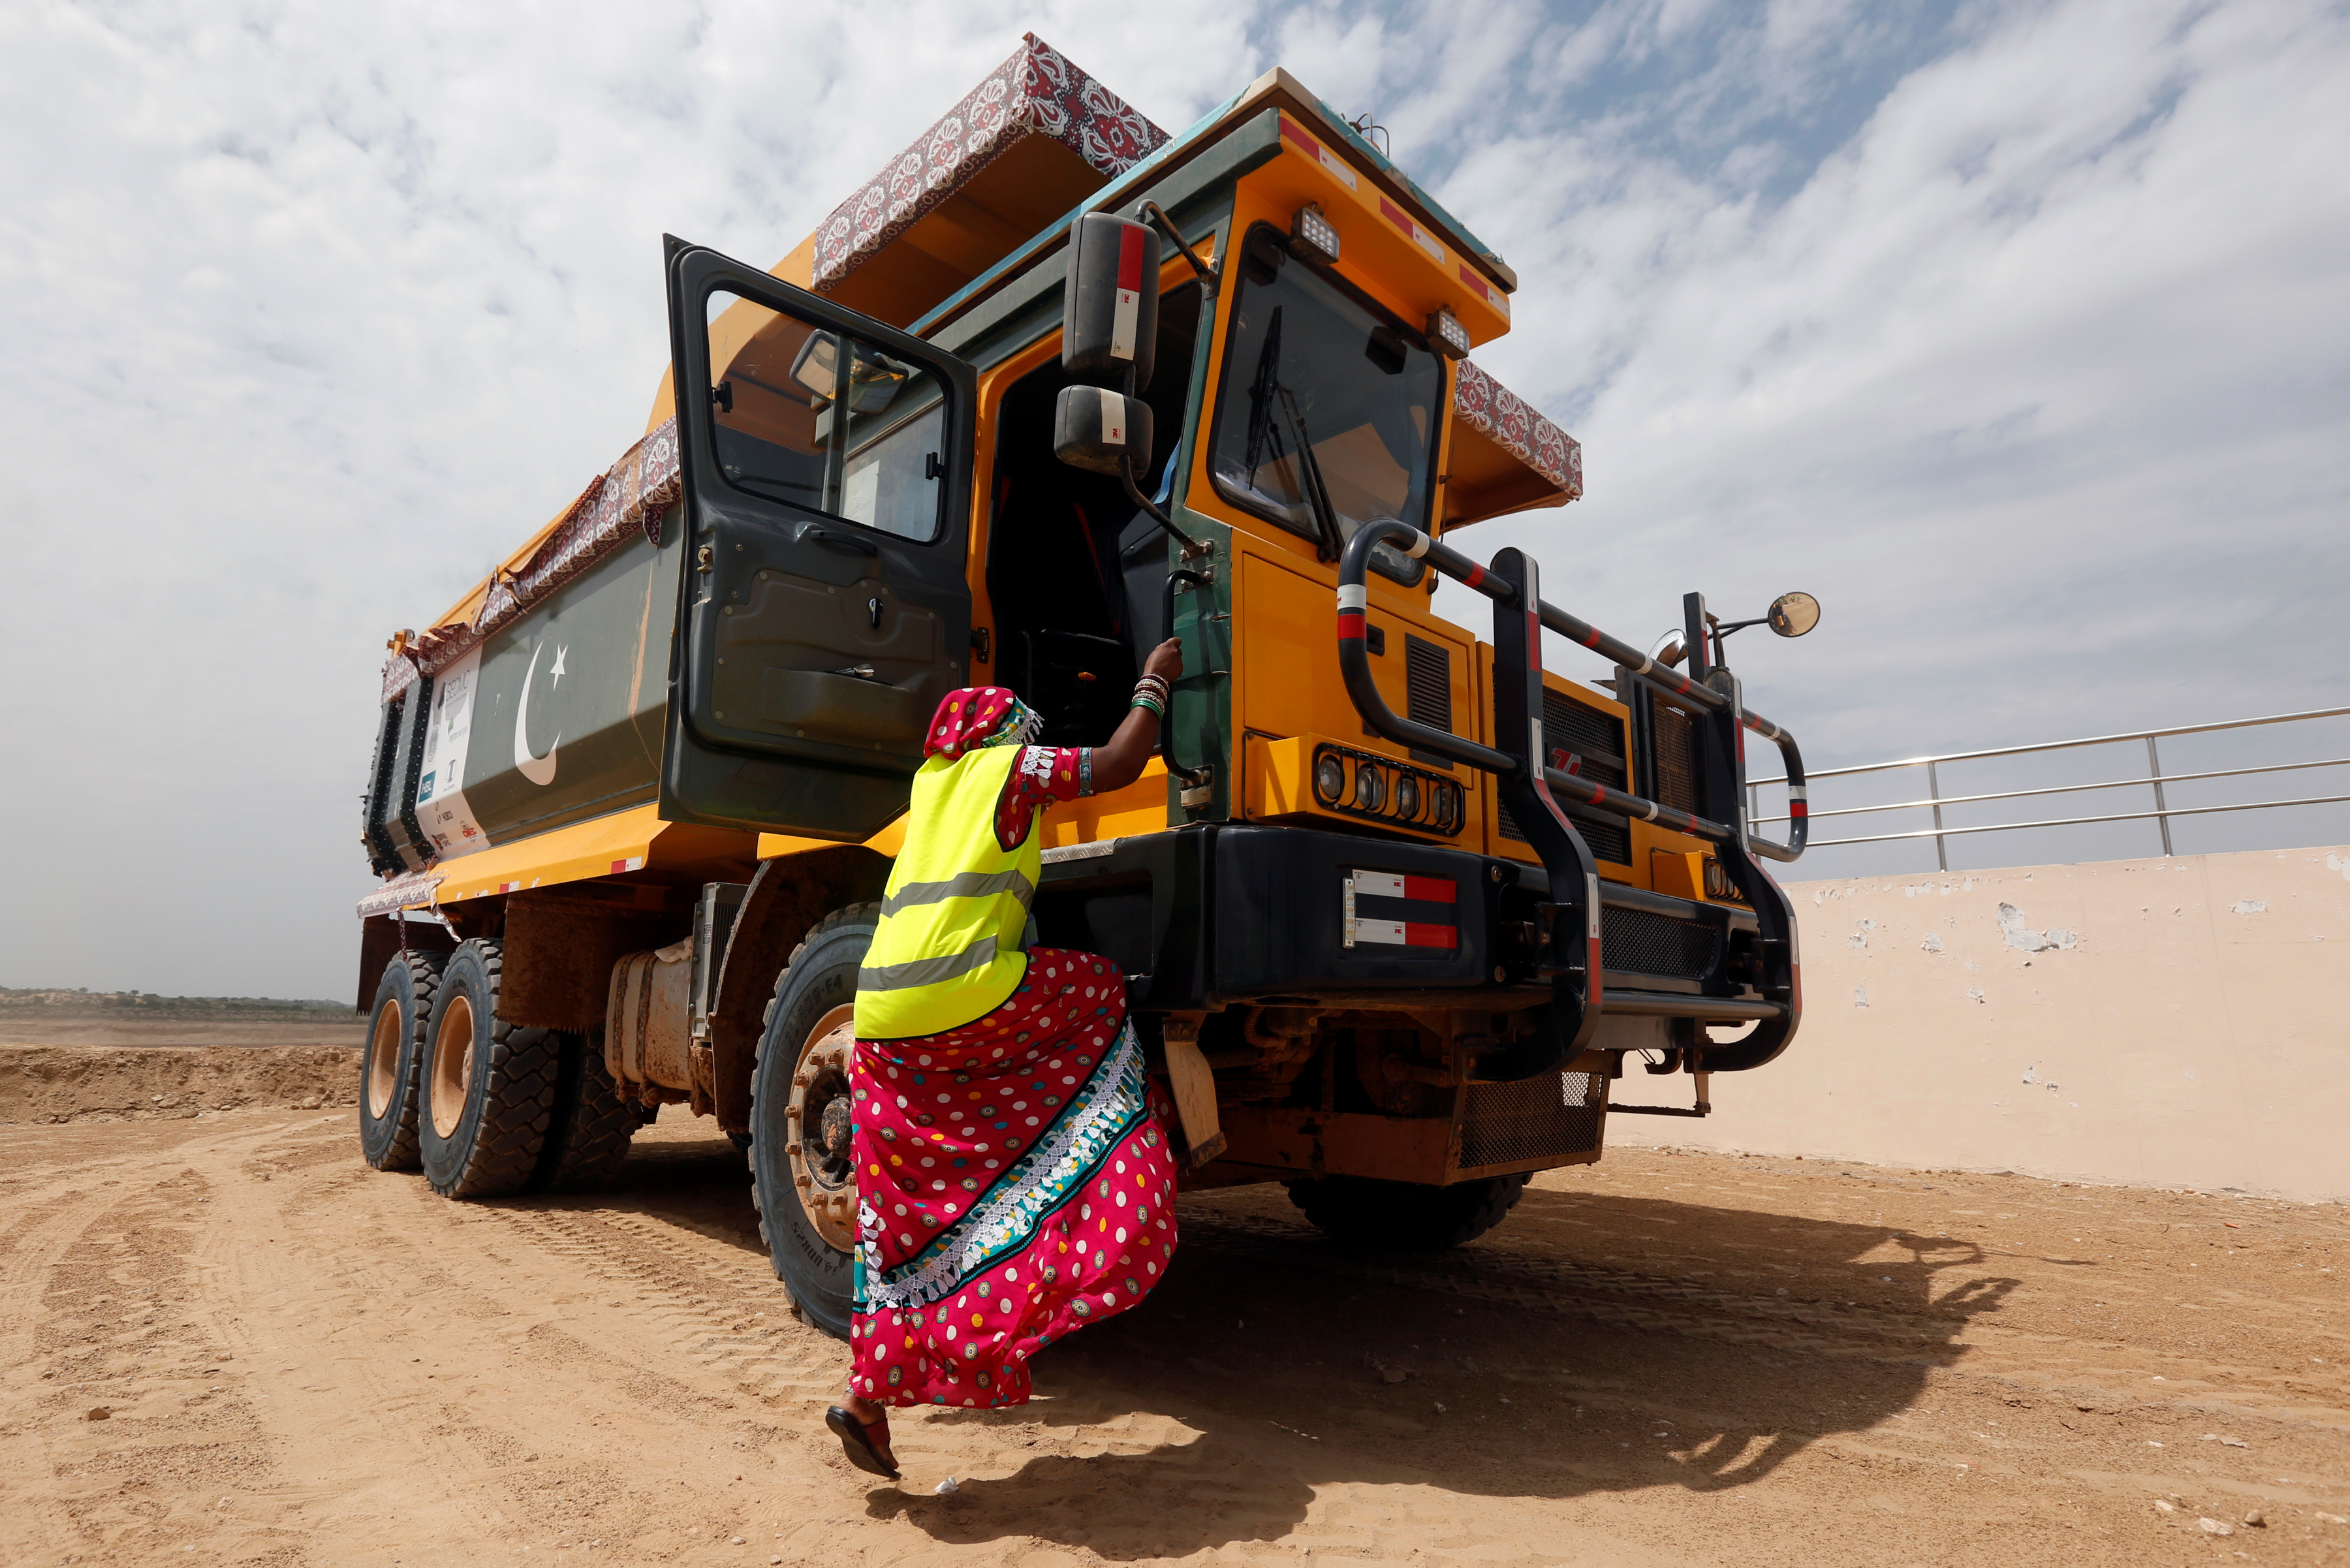 Gulaban, 25, mother of three, climbs into a 60-tonne truck, during a training session of the Female Dump Truck Driver Programme, held by the Sindh Engro Coal Mining Company (SECMC), in Islamkot, Tharparkar, Pakistan September 21, 2017. Picture taken September 21, 2017. REUTERS/Akhtar Soomro - RC14E23BF690